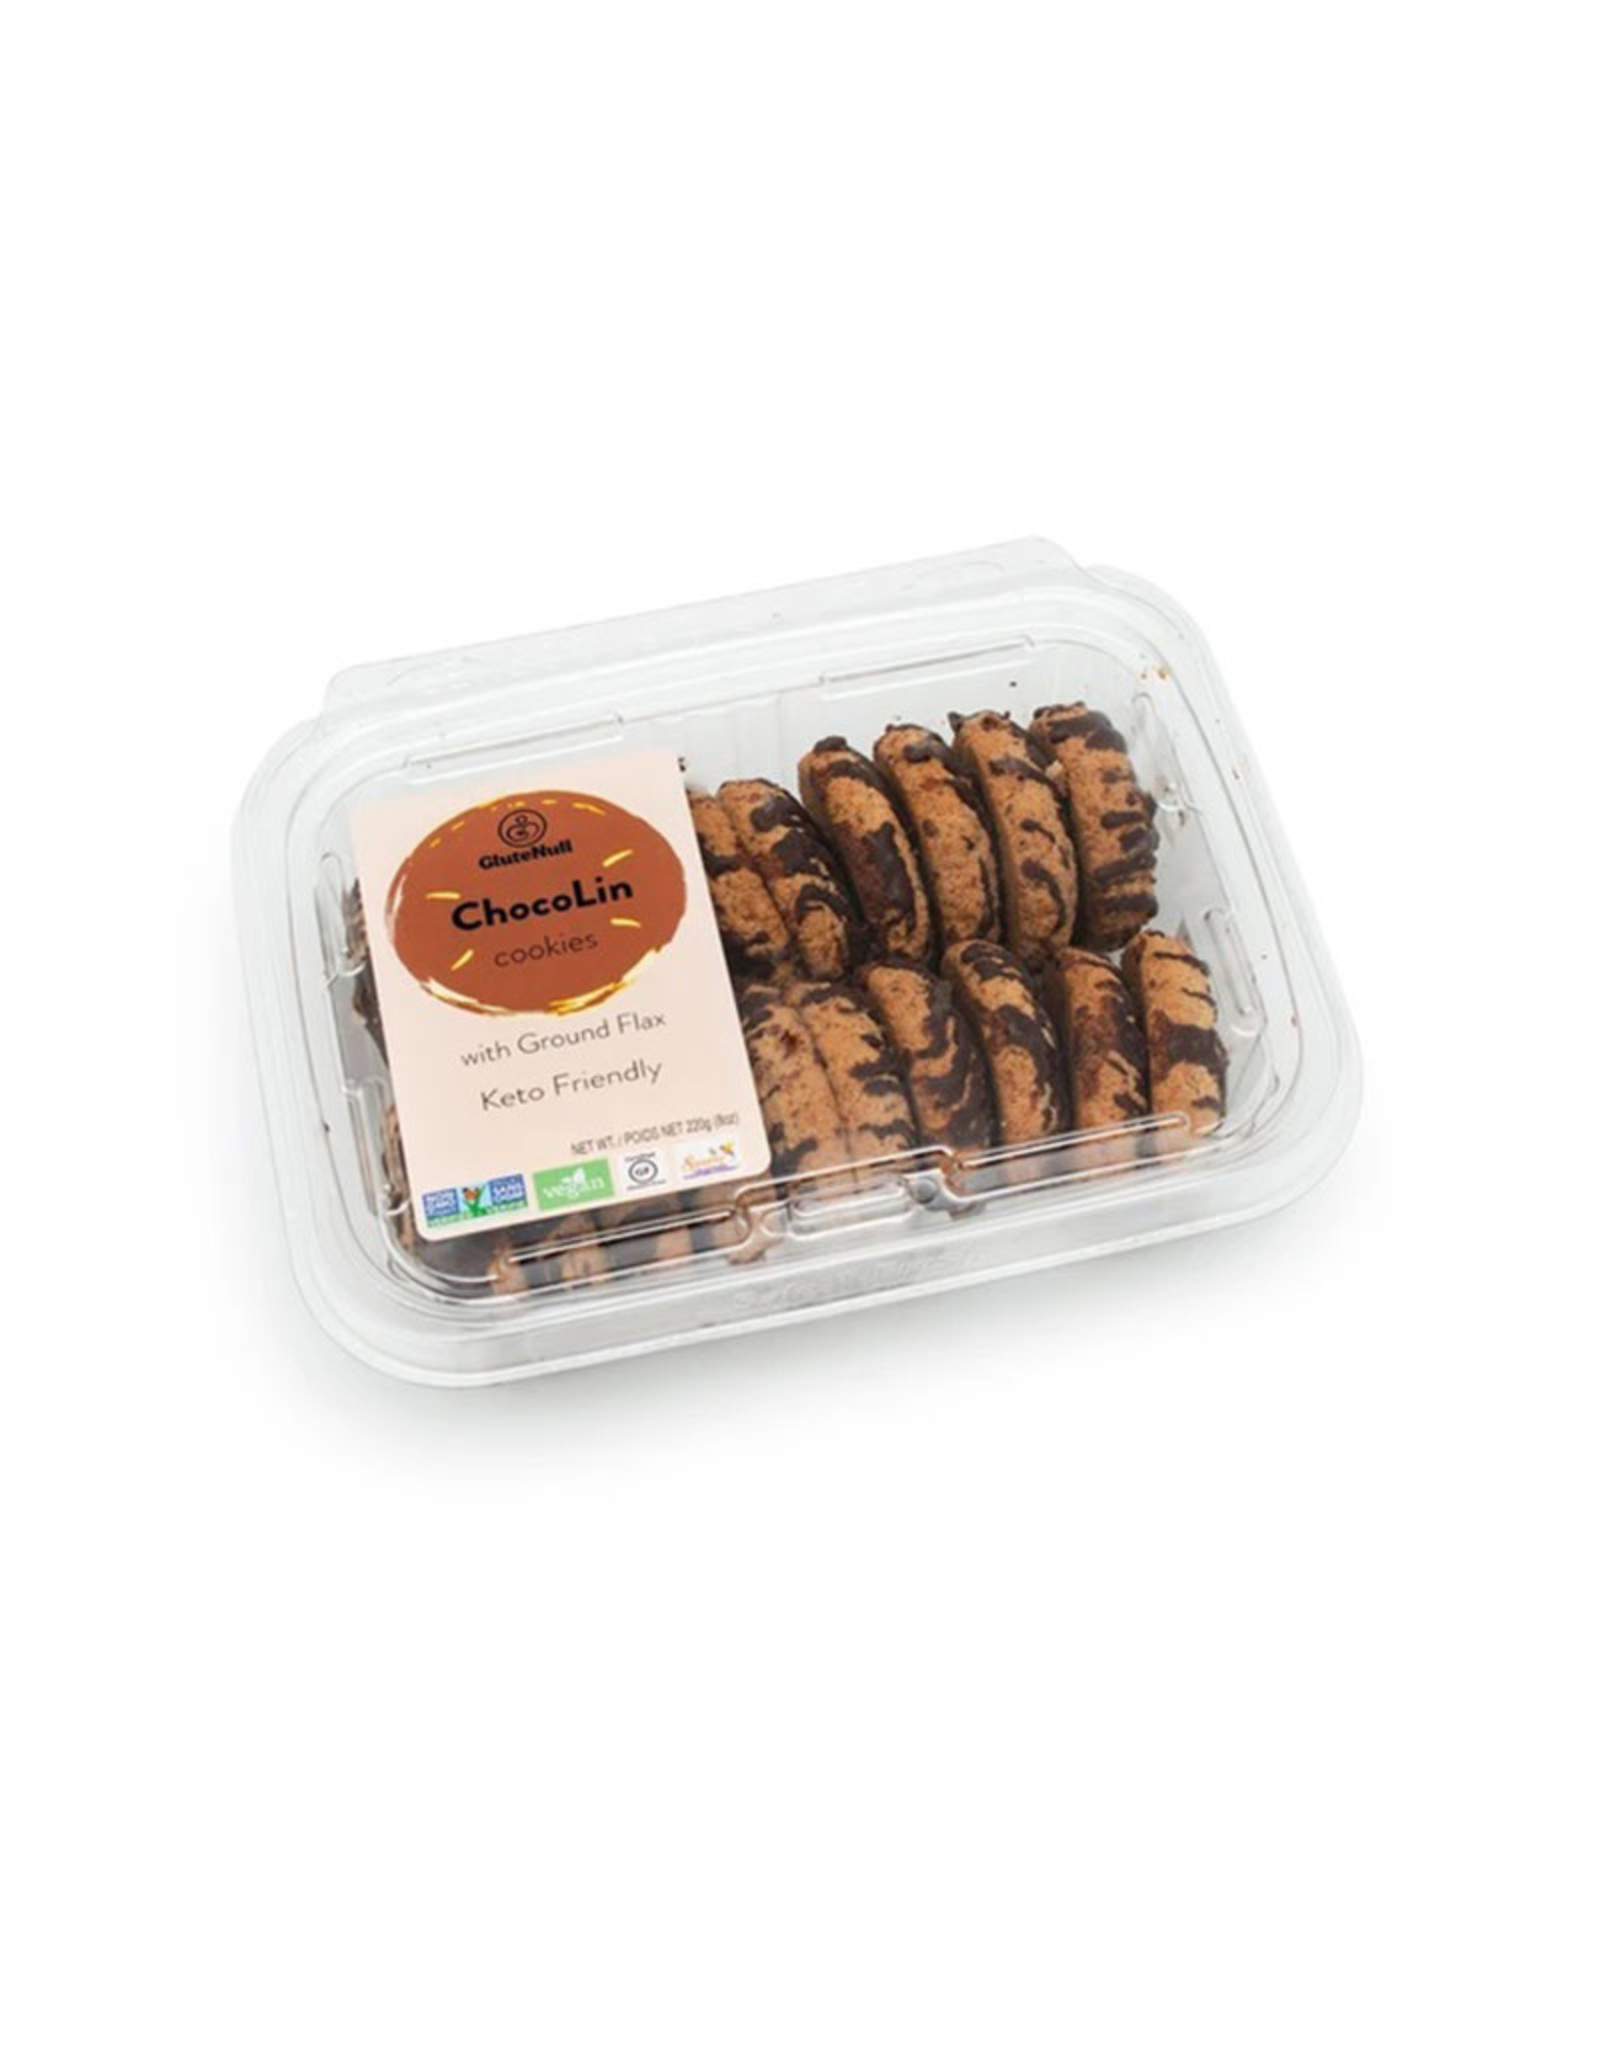 Glutenull Bakery Glutenull Bakery - Biscuits Keto, Chocolin (220g)